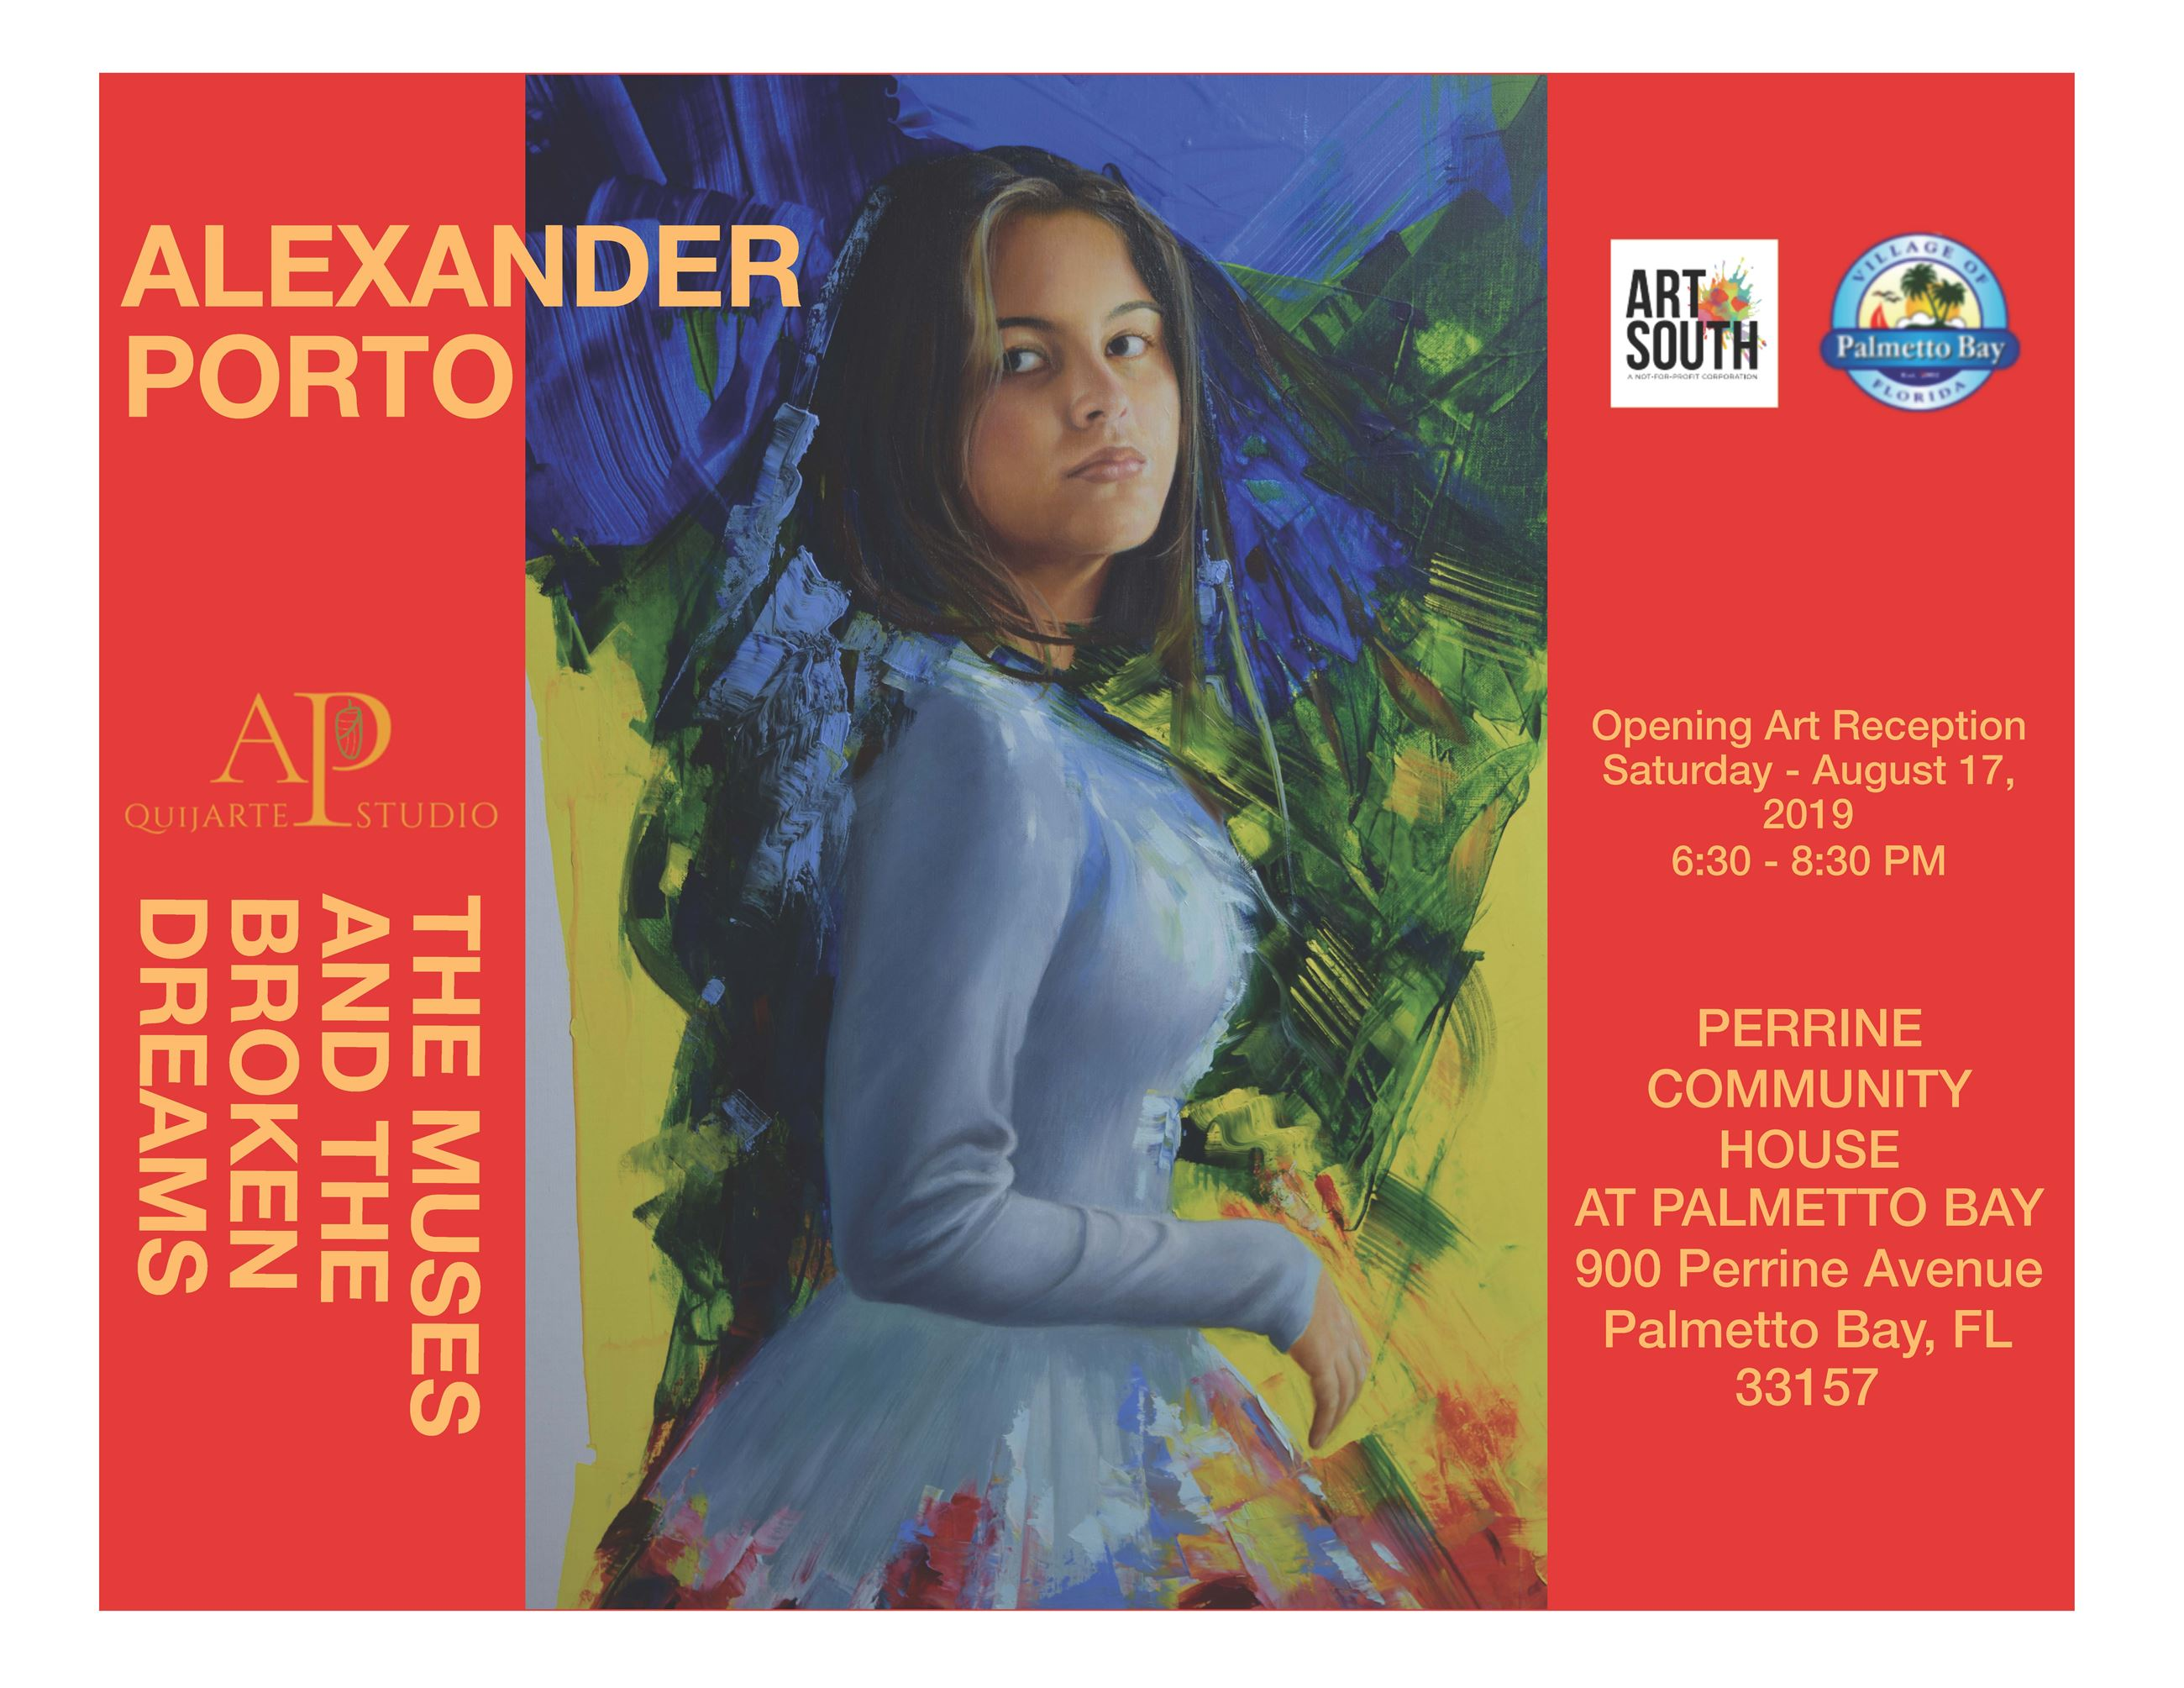 ArtSouth presents Alexander Porto's work on Saturday, August 17th from 6:30 PM - 8:30 PM at the P